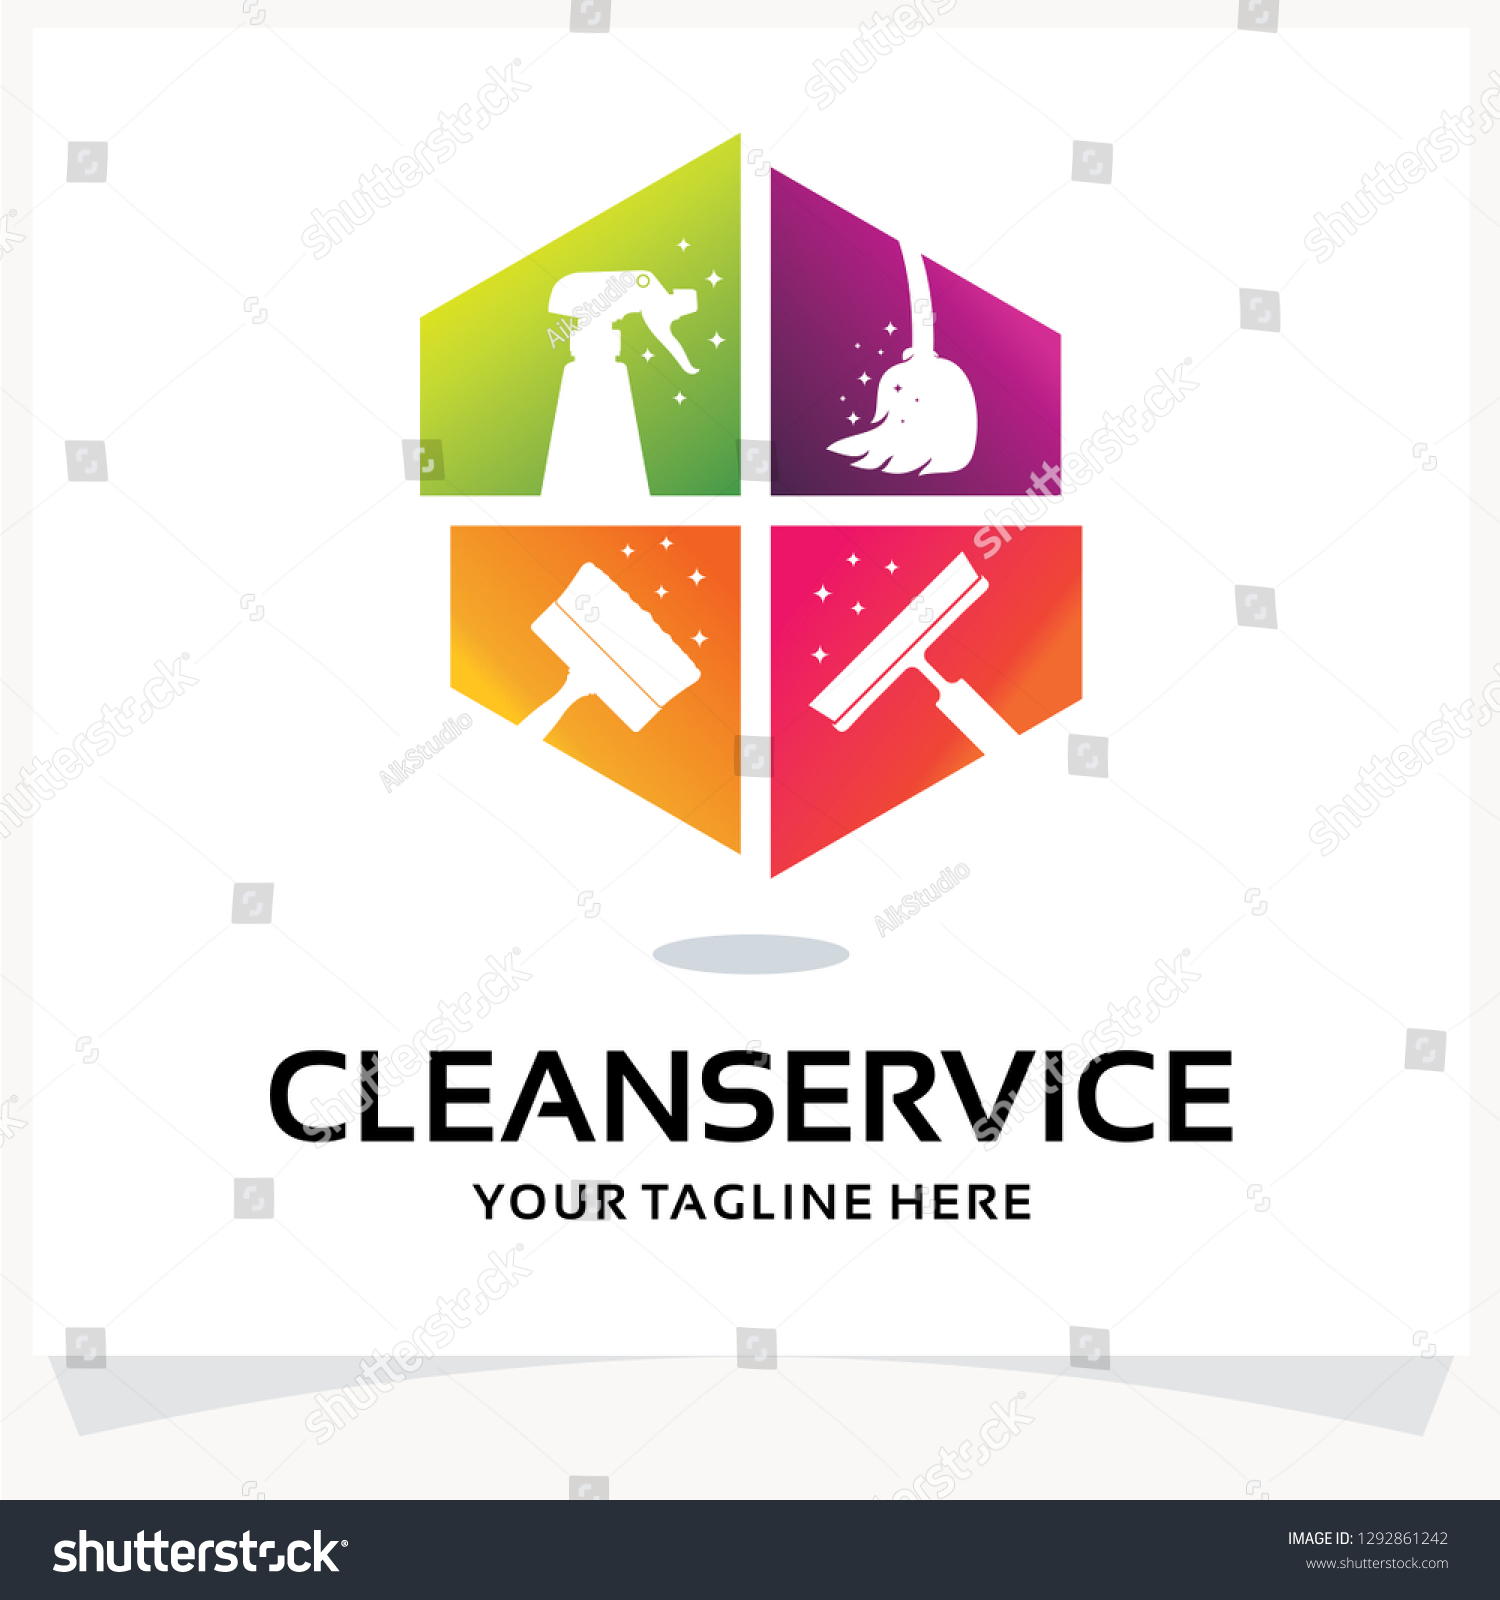 Cleaning Service Logo Design Template Inspiration Stock Vector